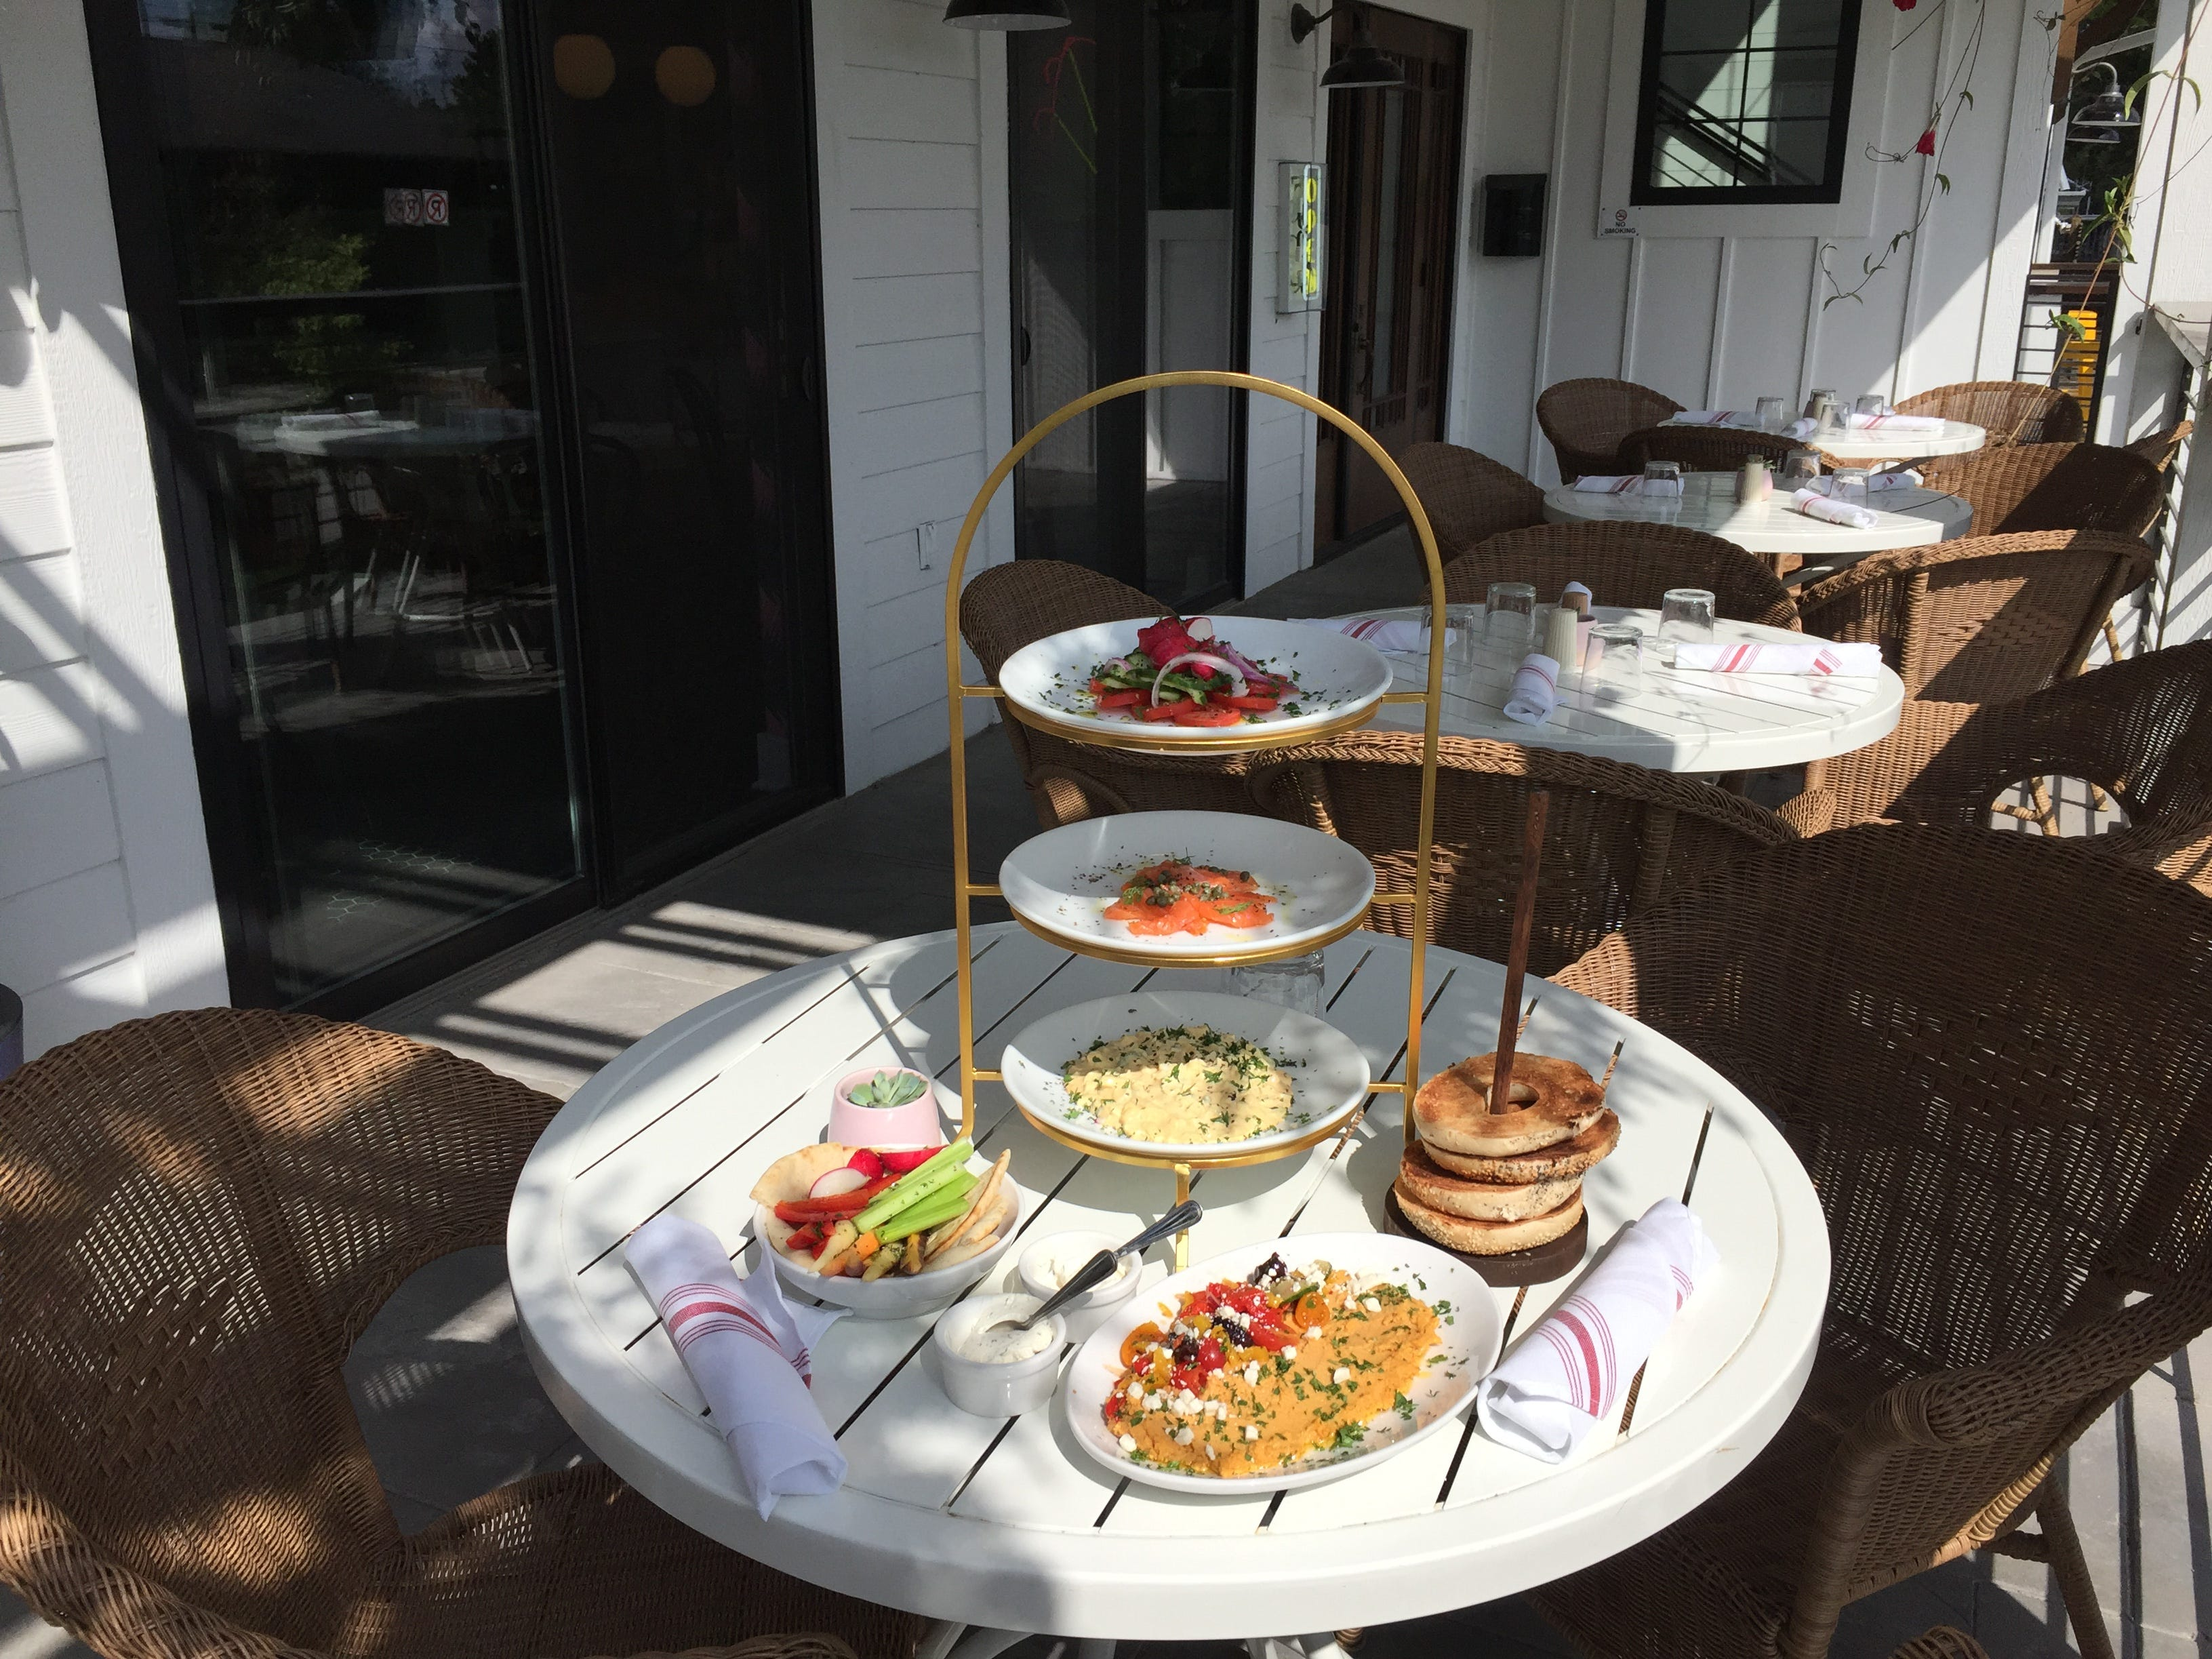 Add mimosa or bellini service to a selection of fresh food for an improptu brunch on the patio at Just Pop In! popcorn bar and cafe at 6406 Cornell Ave. in the Broad Ripple  community of Indianapolis.